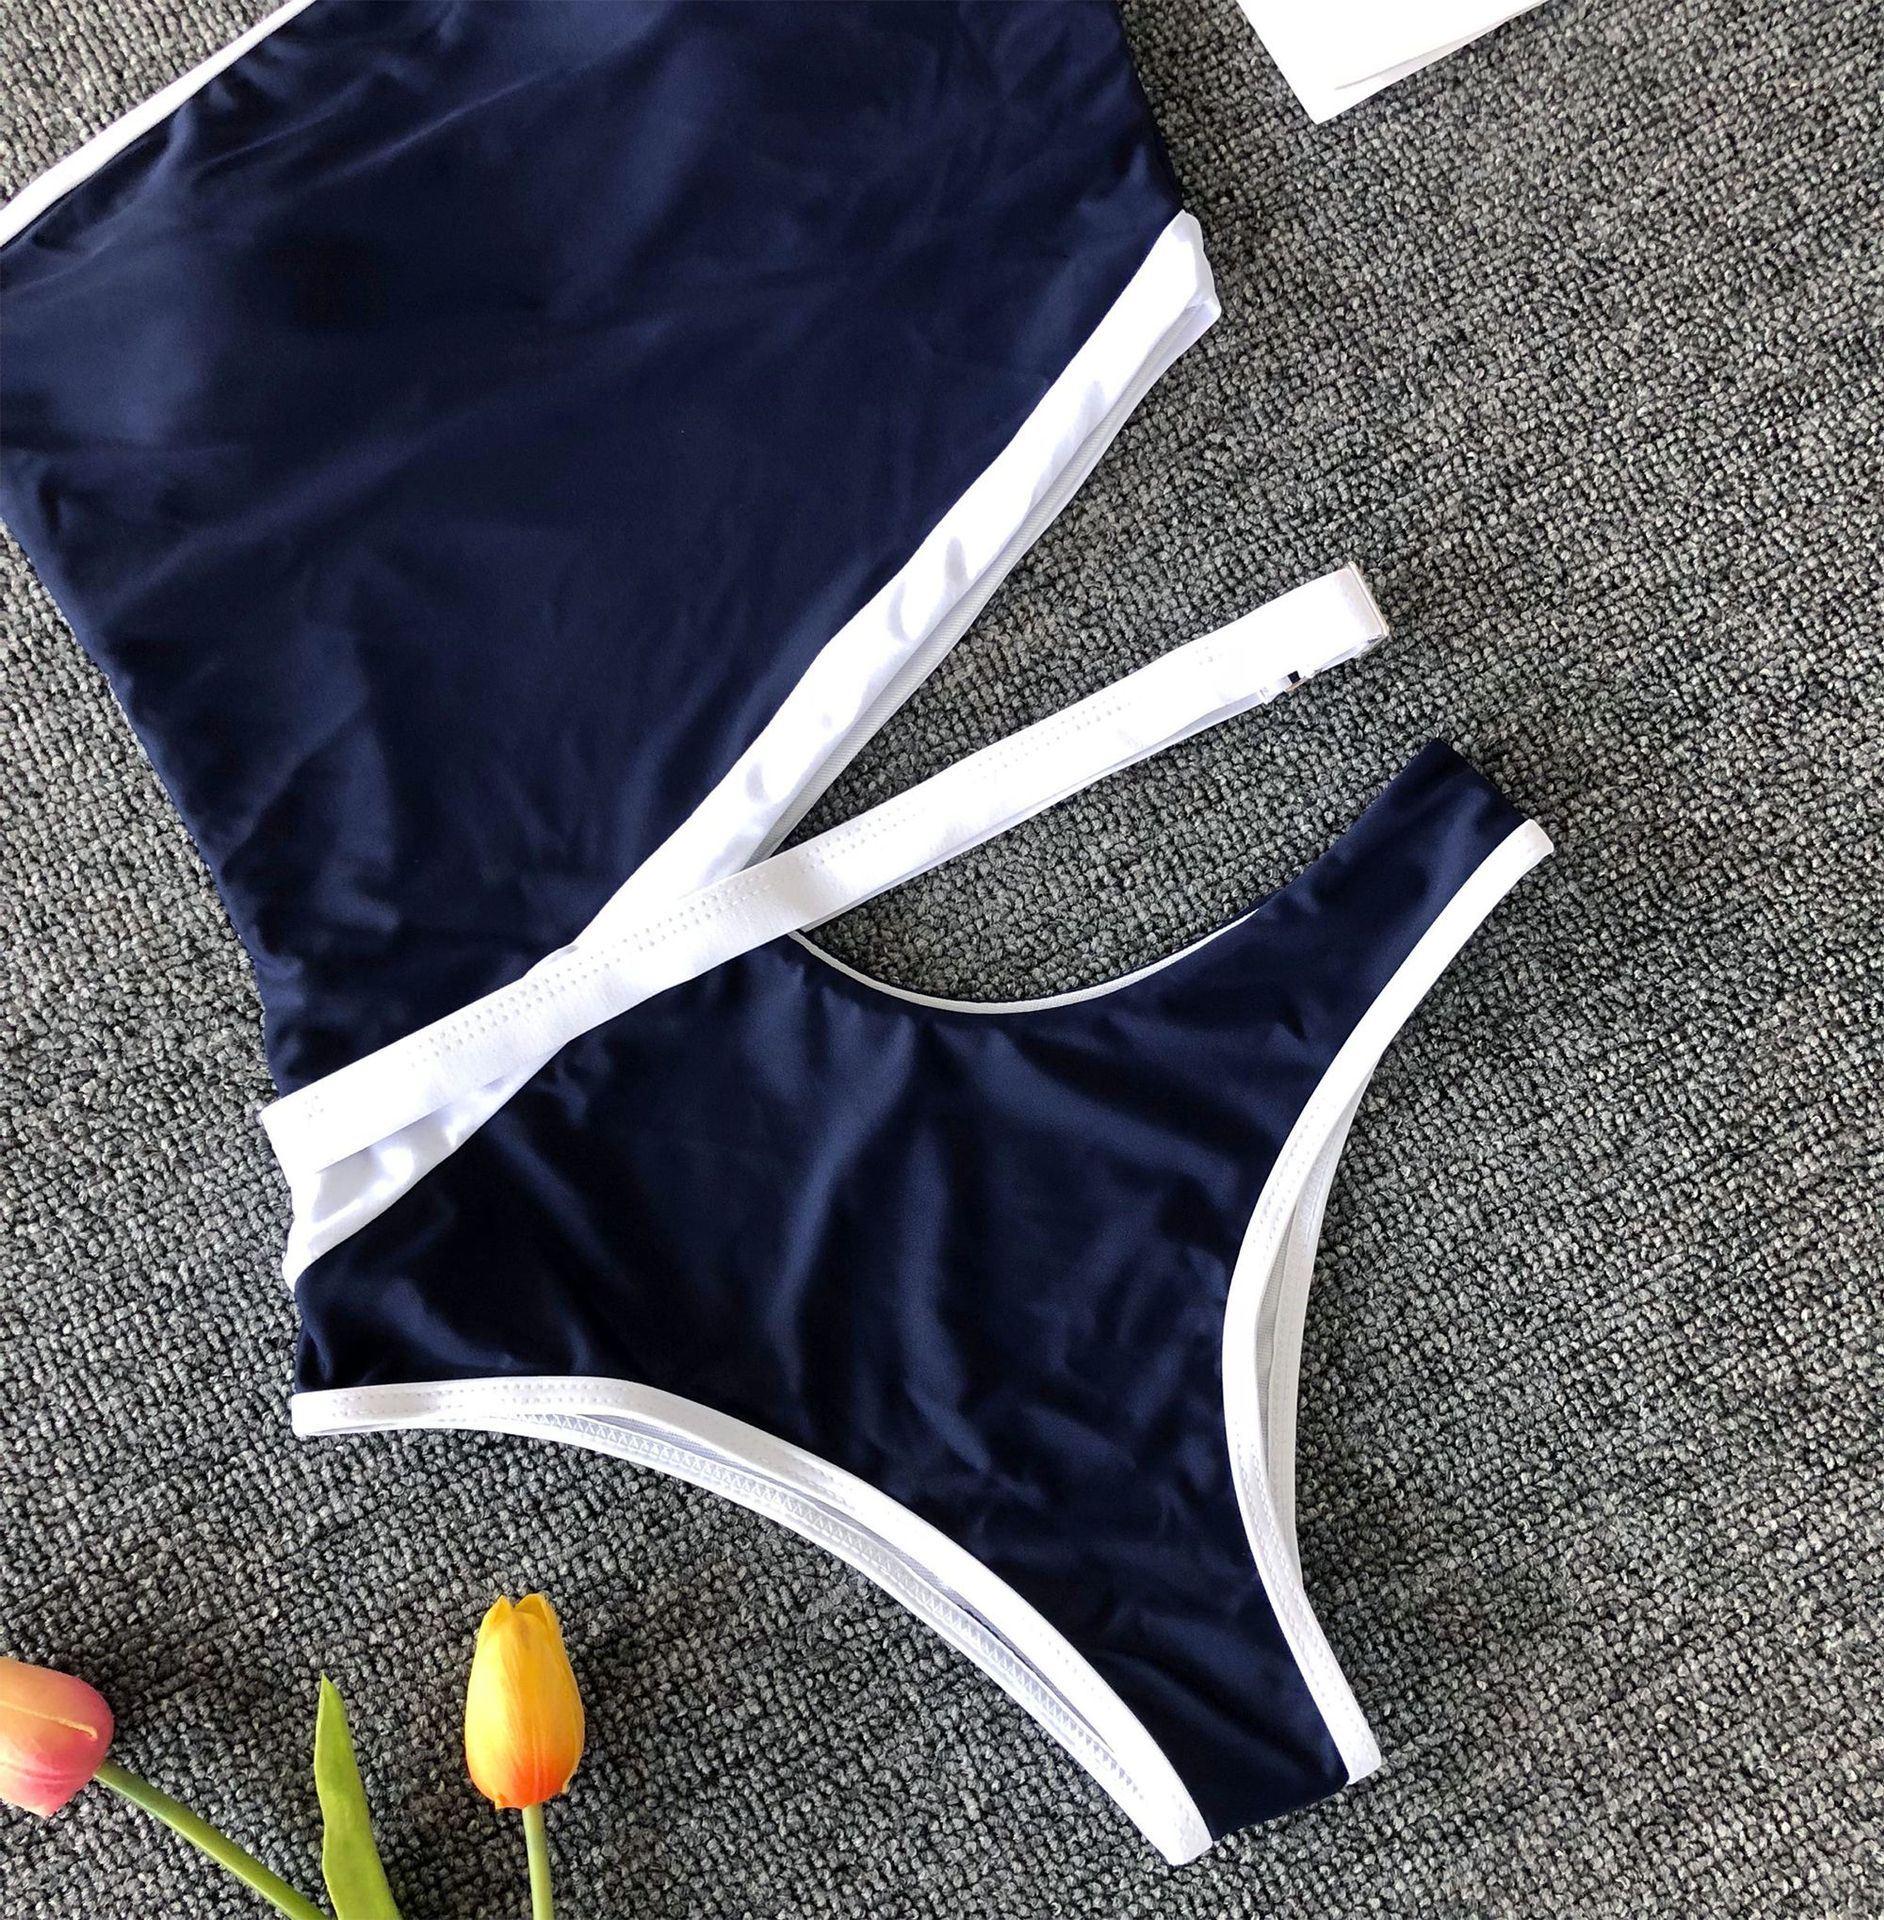 One-piece one-piece swimsuit with fashionable belt